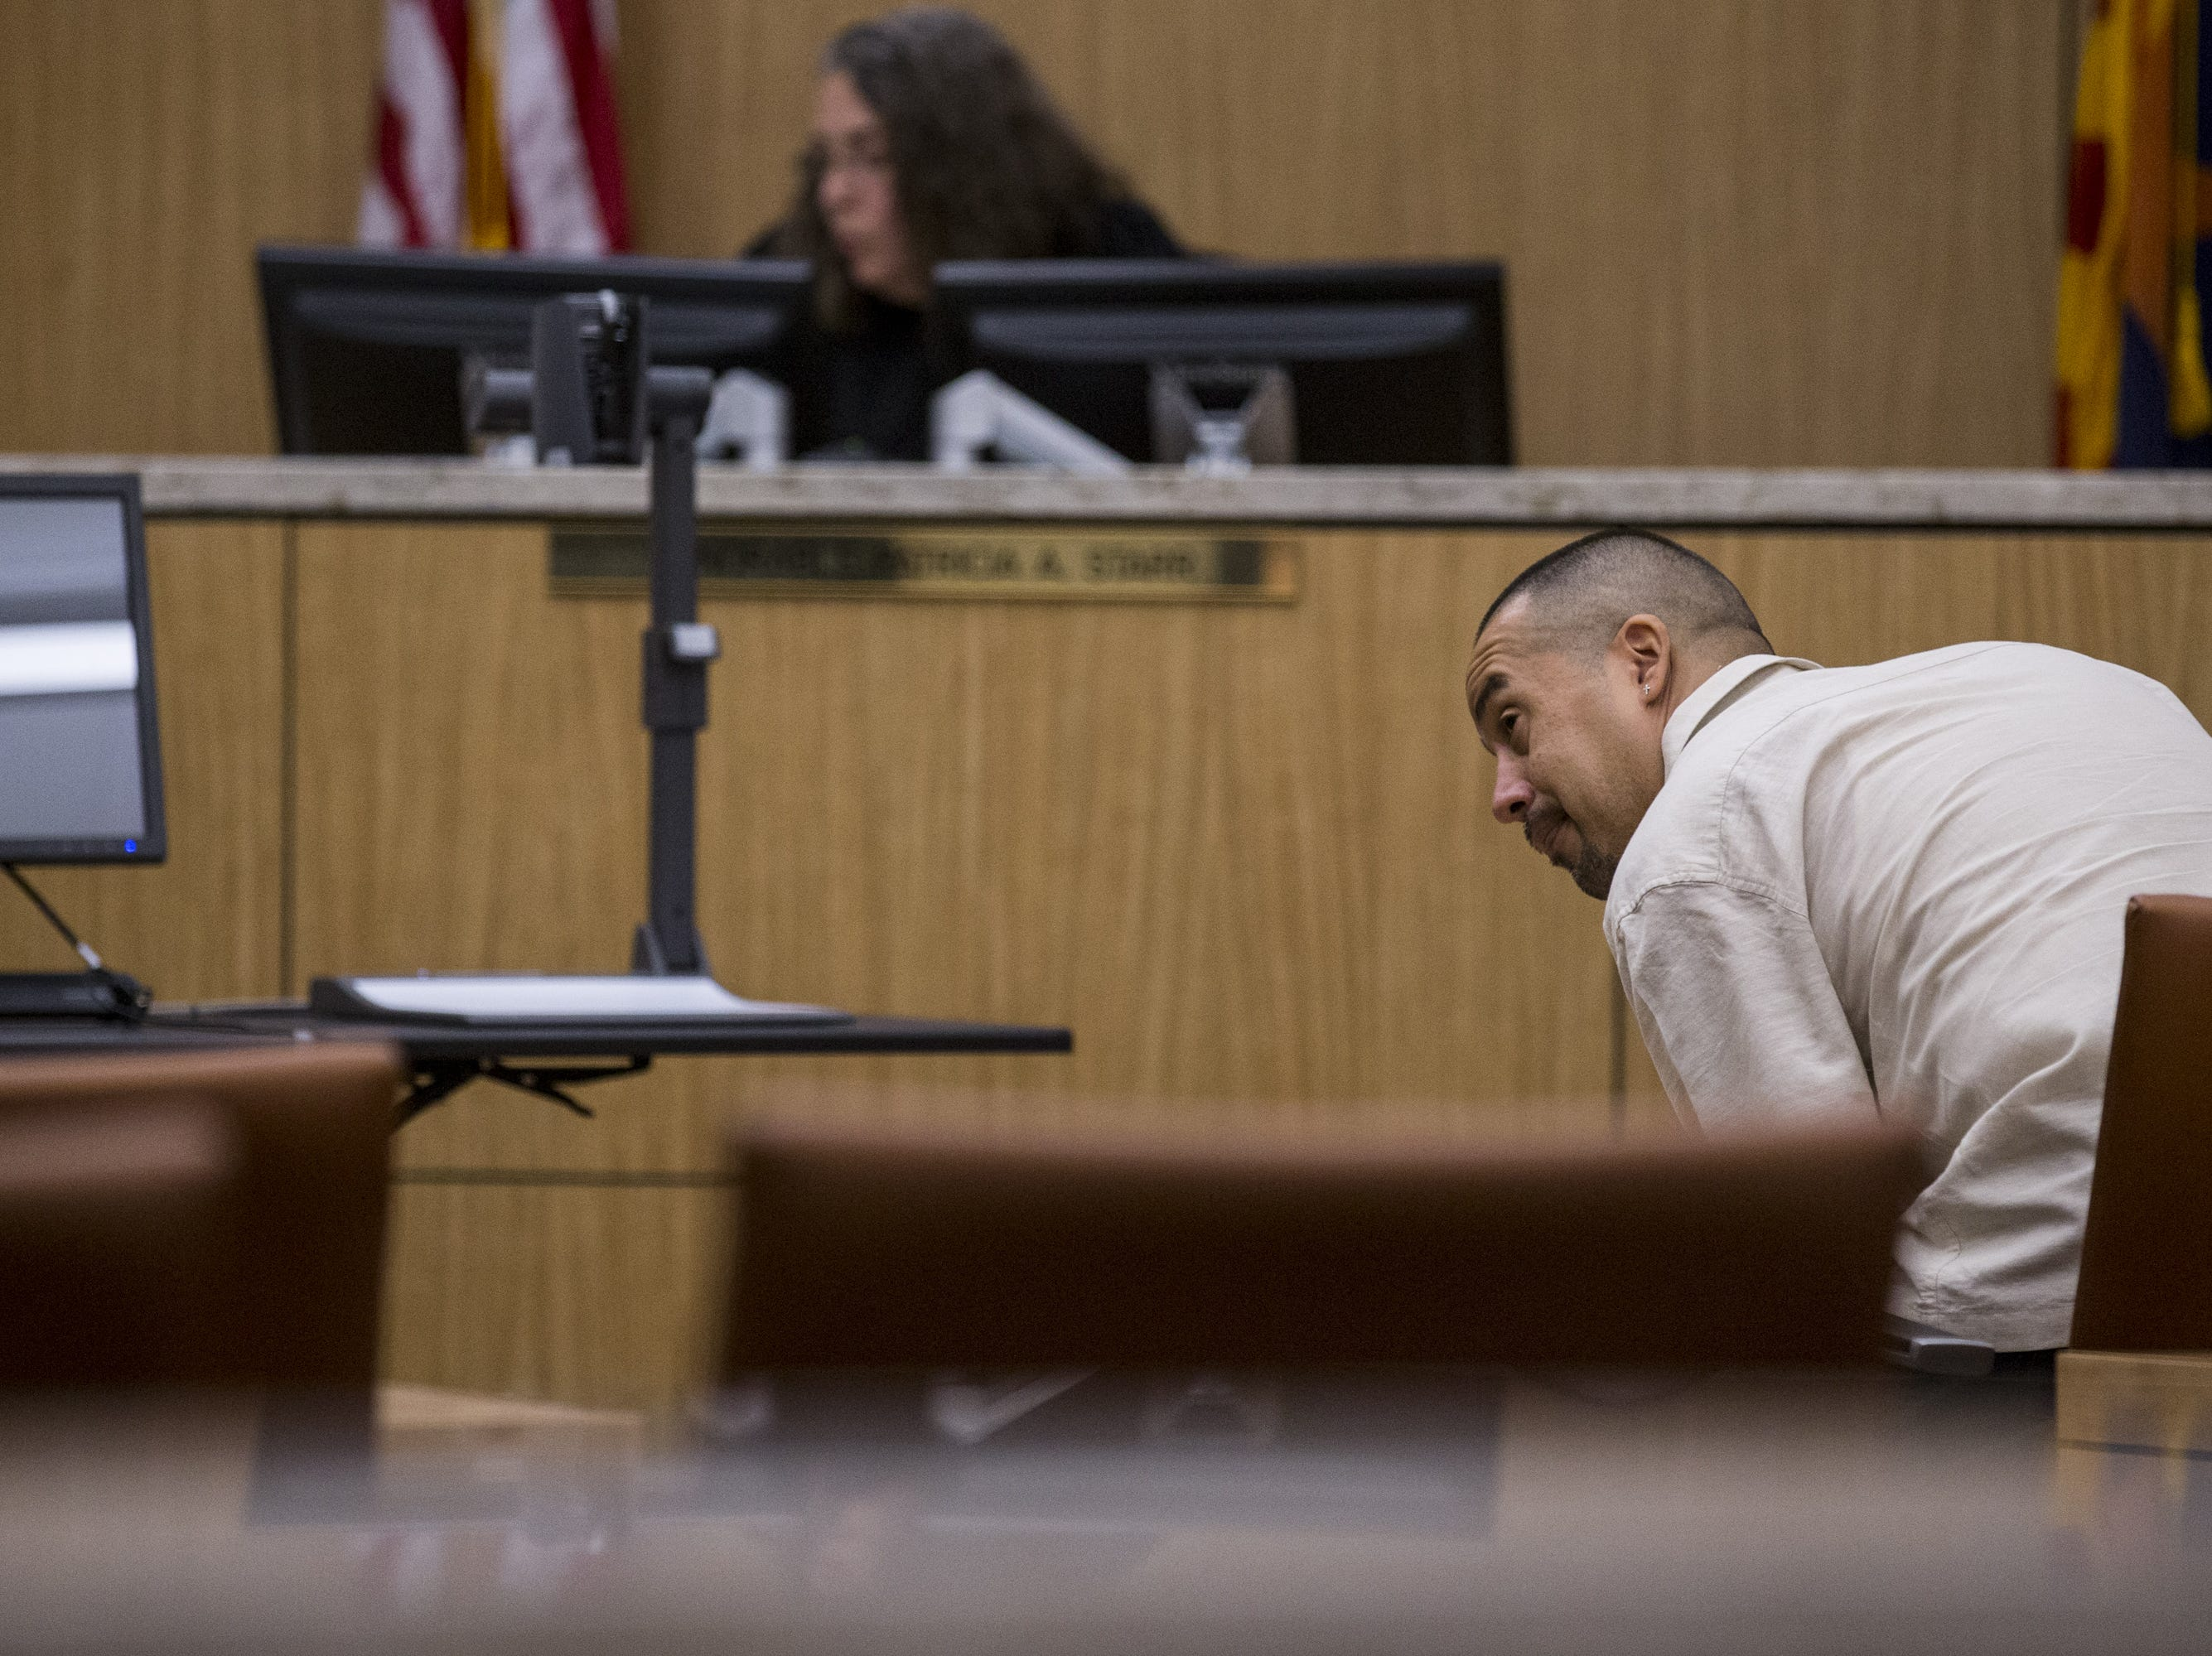 Ysidro Bracamonte leaves after receiving his judgment Friday, Aug. 17, 2018, during a hearing for people who failed to show up for jury duty on at Maricopa County Superior Court in Phoenix.